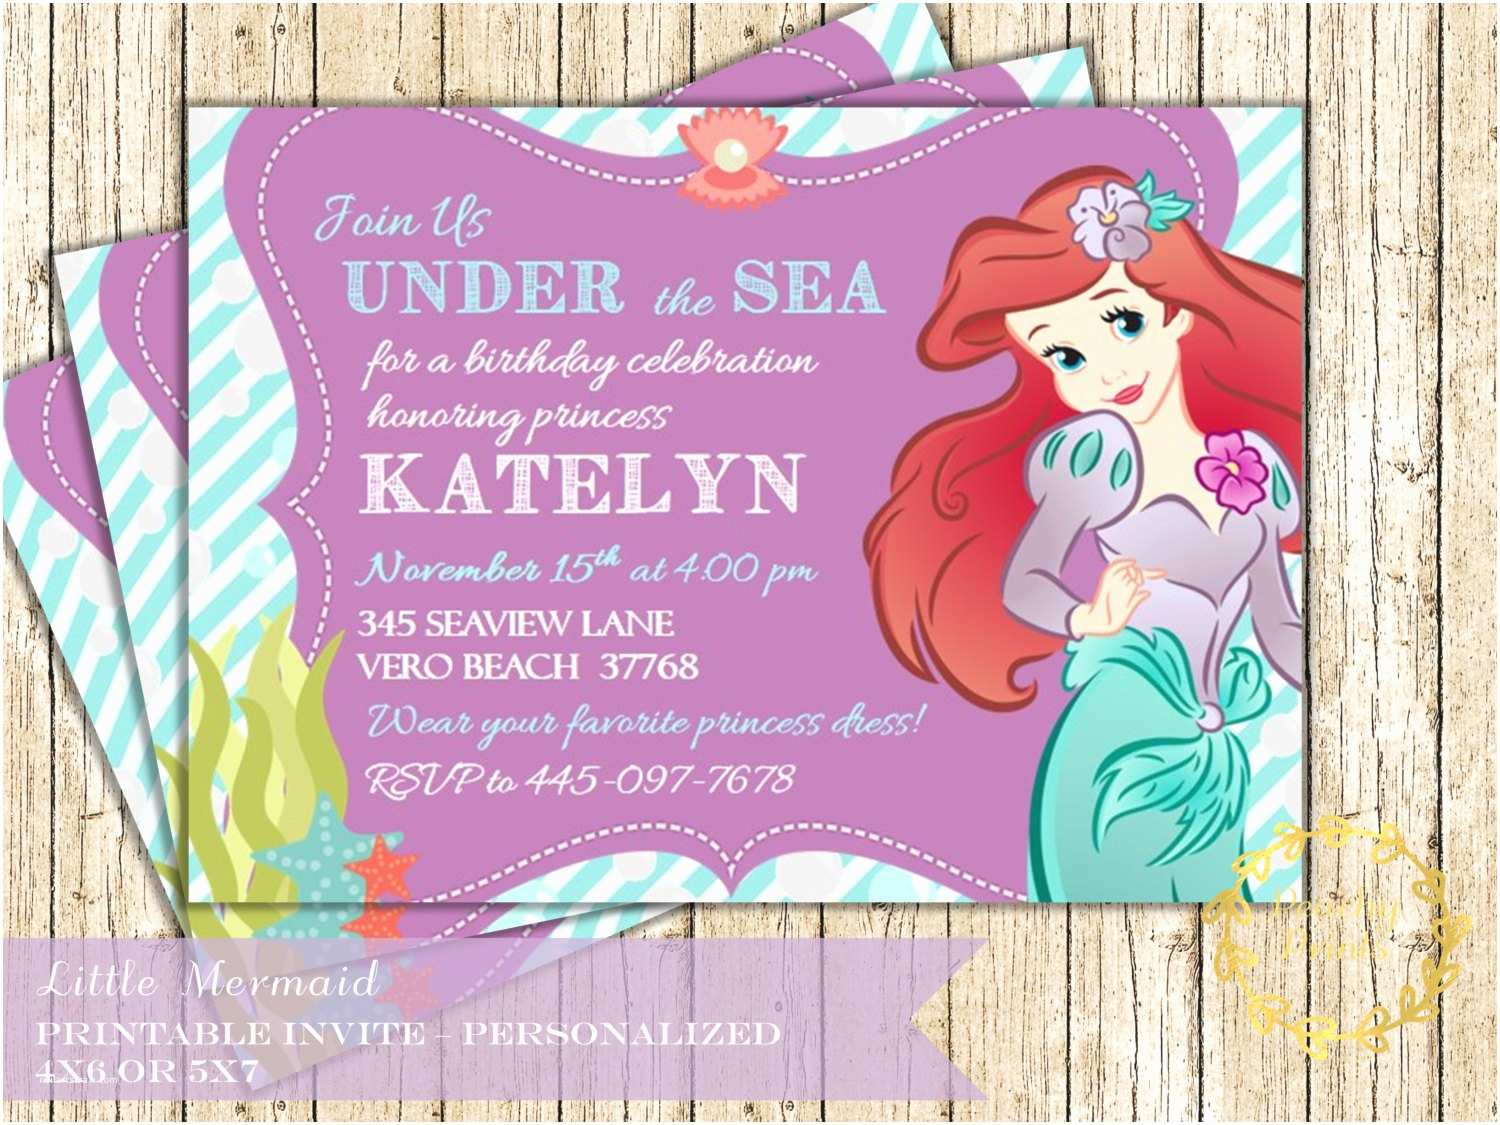 Little Mermaid Party Invitations Ariel Little Mermaid Birthday Invitation Under by